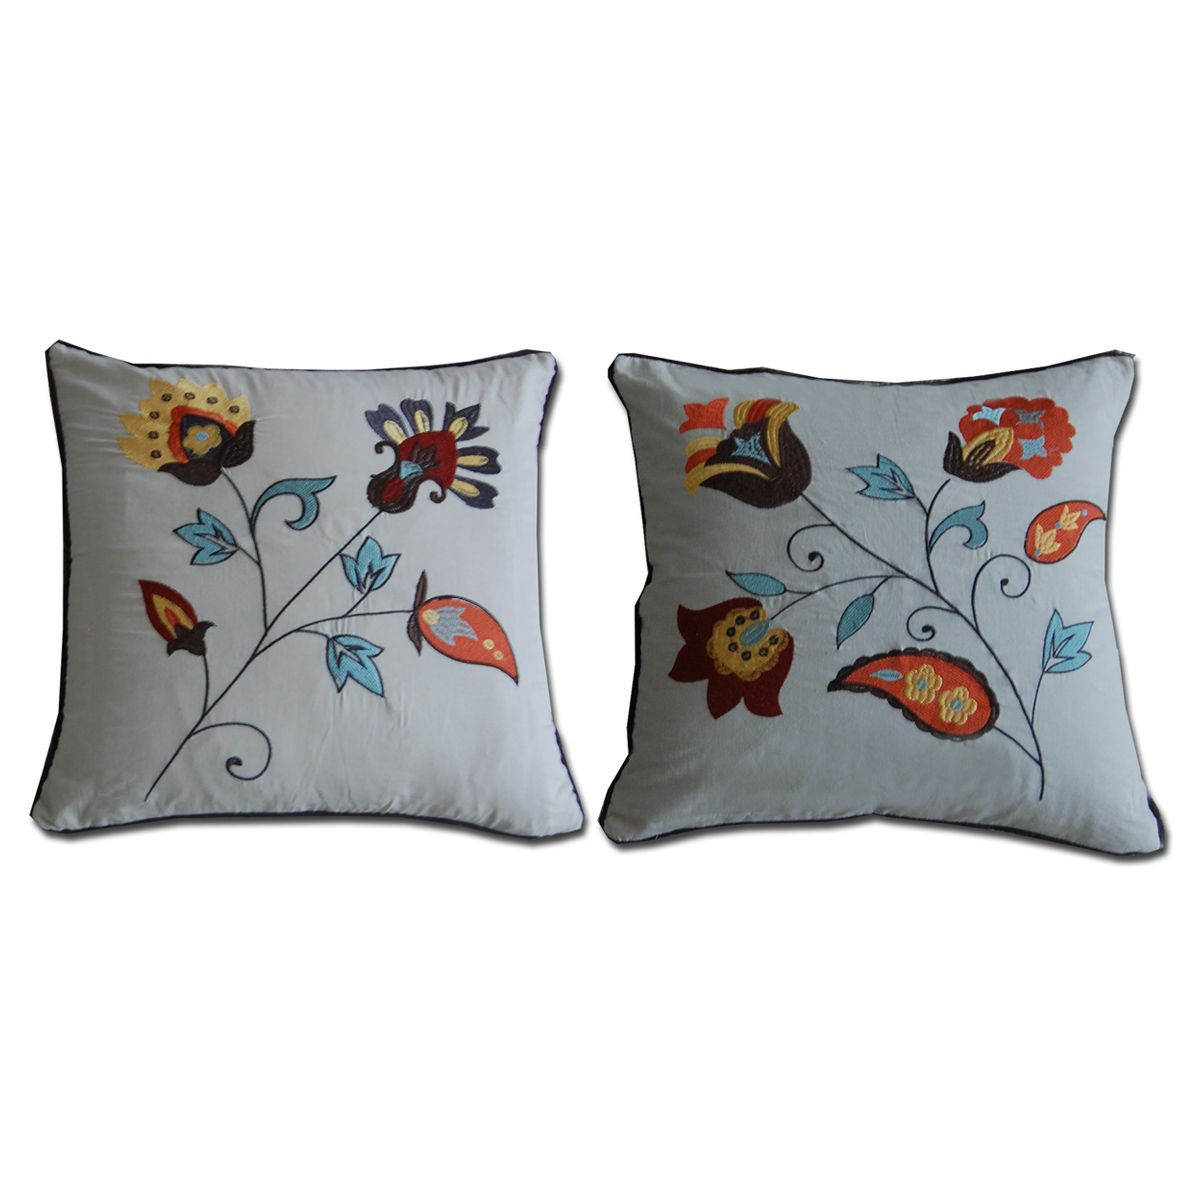 Western Medallions Pillows - Set of 2